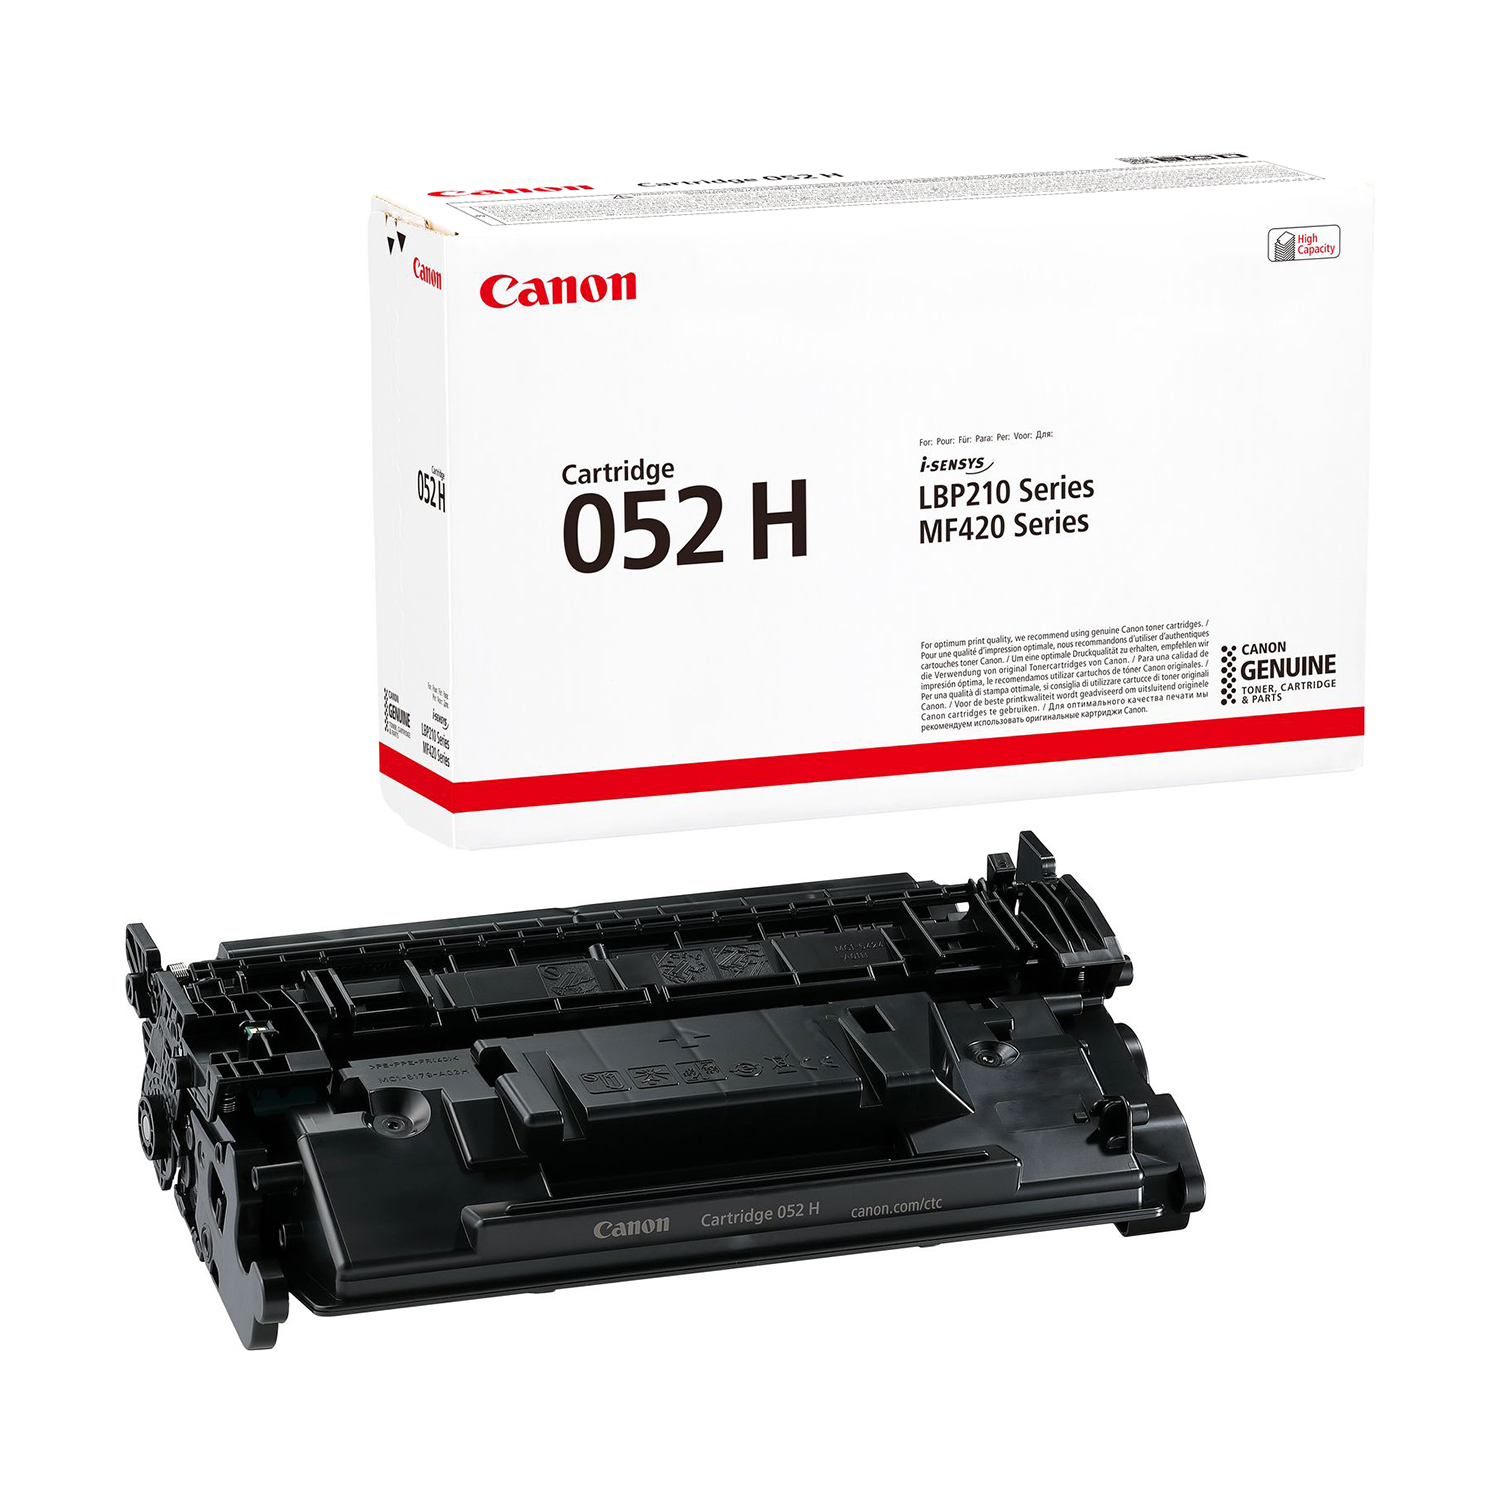 Canon 052H Laser Toner Cartridge High Yield Page Life 9200pp Black Ref 2200C002